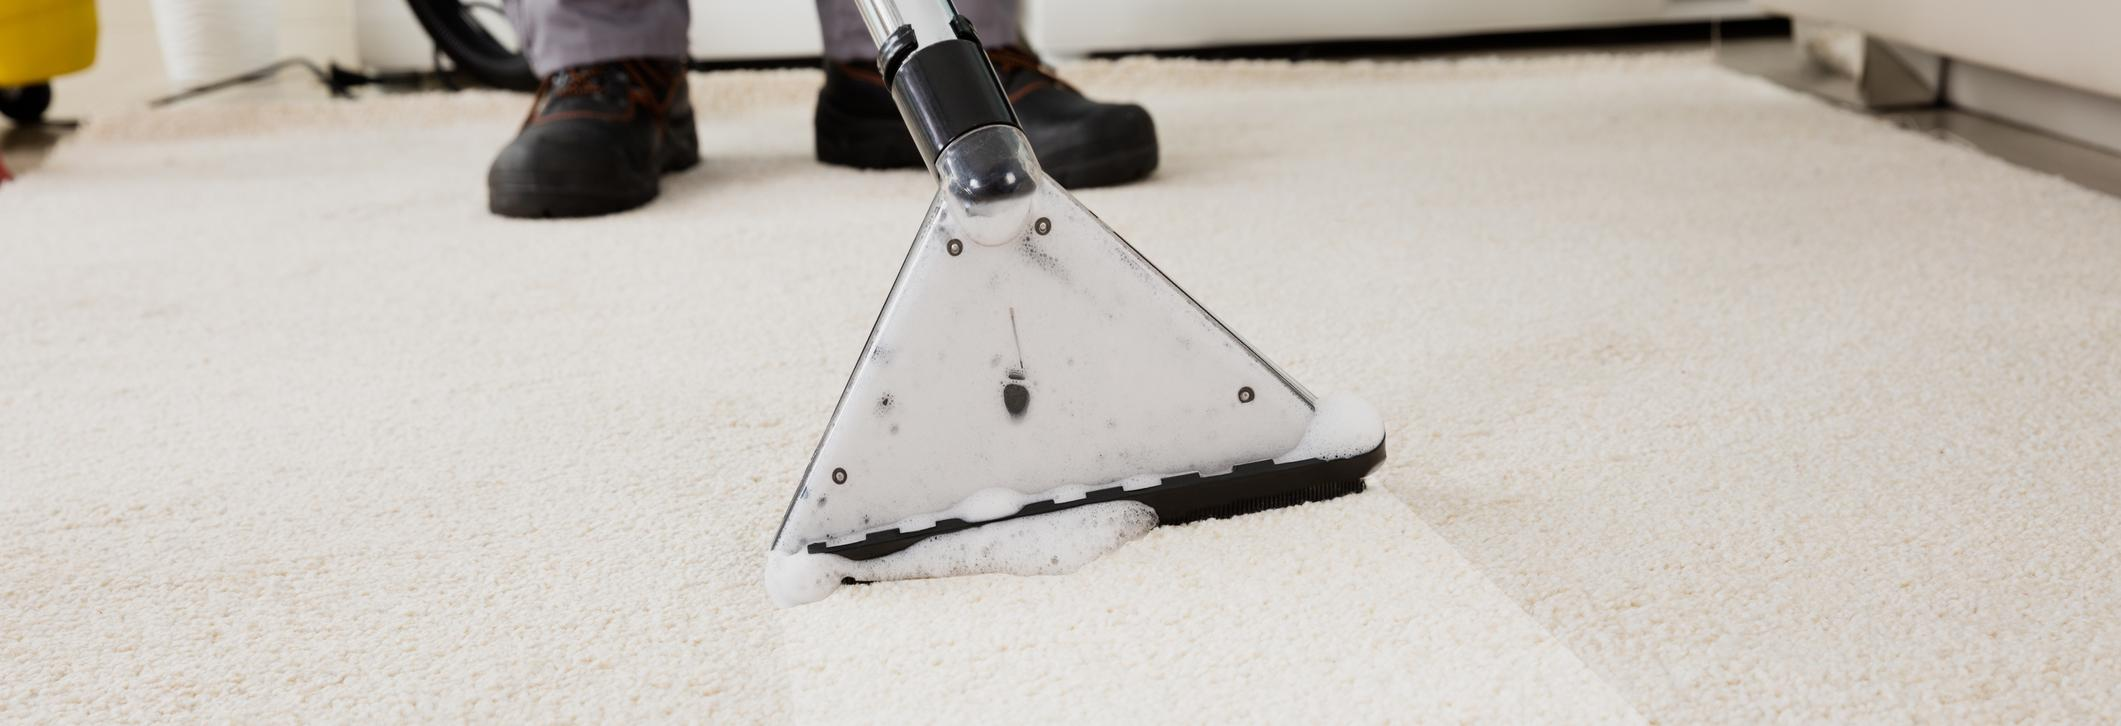 Teasdale Fenton Carpet Cleaning & Restoration - Local Coupons ...